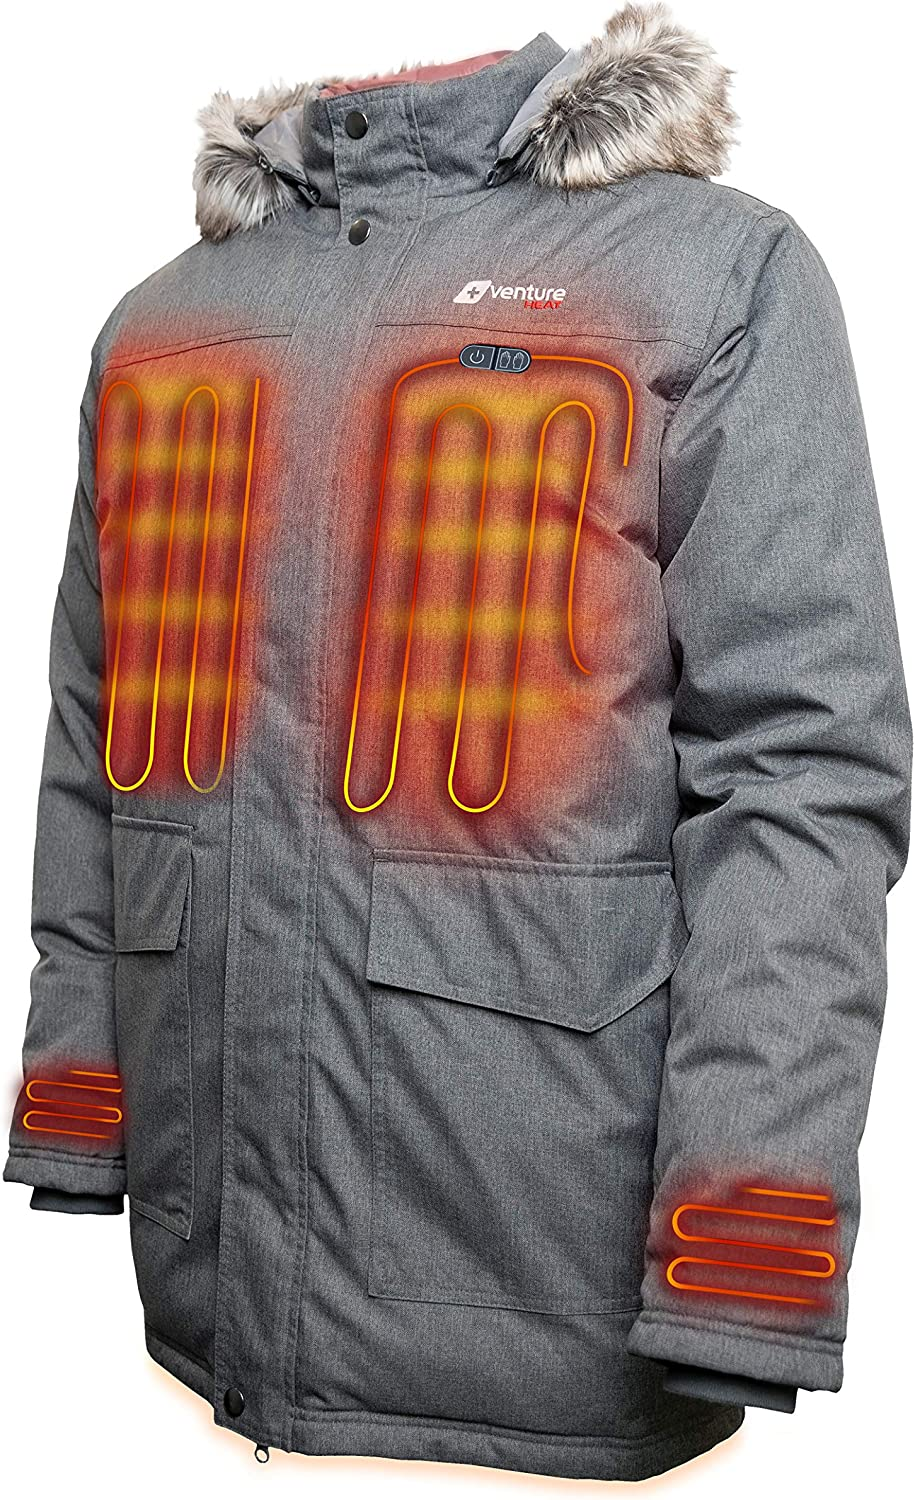 Venture Heat Men's Heated Parka with Battery - Down Fill Electric Long Coat, Insulated, Expedition 2.0